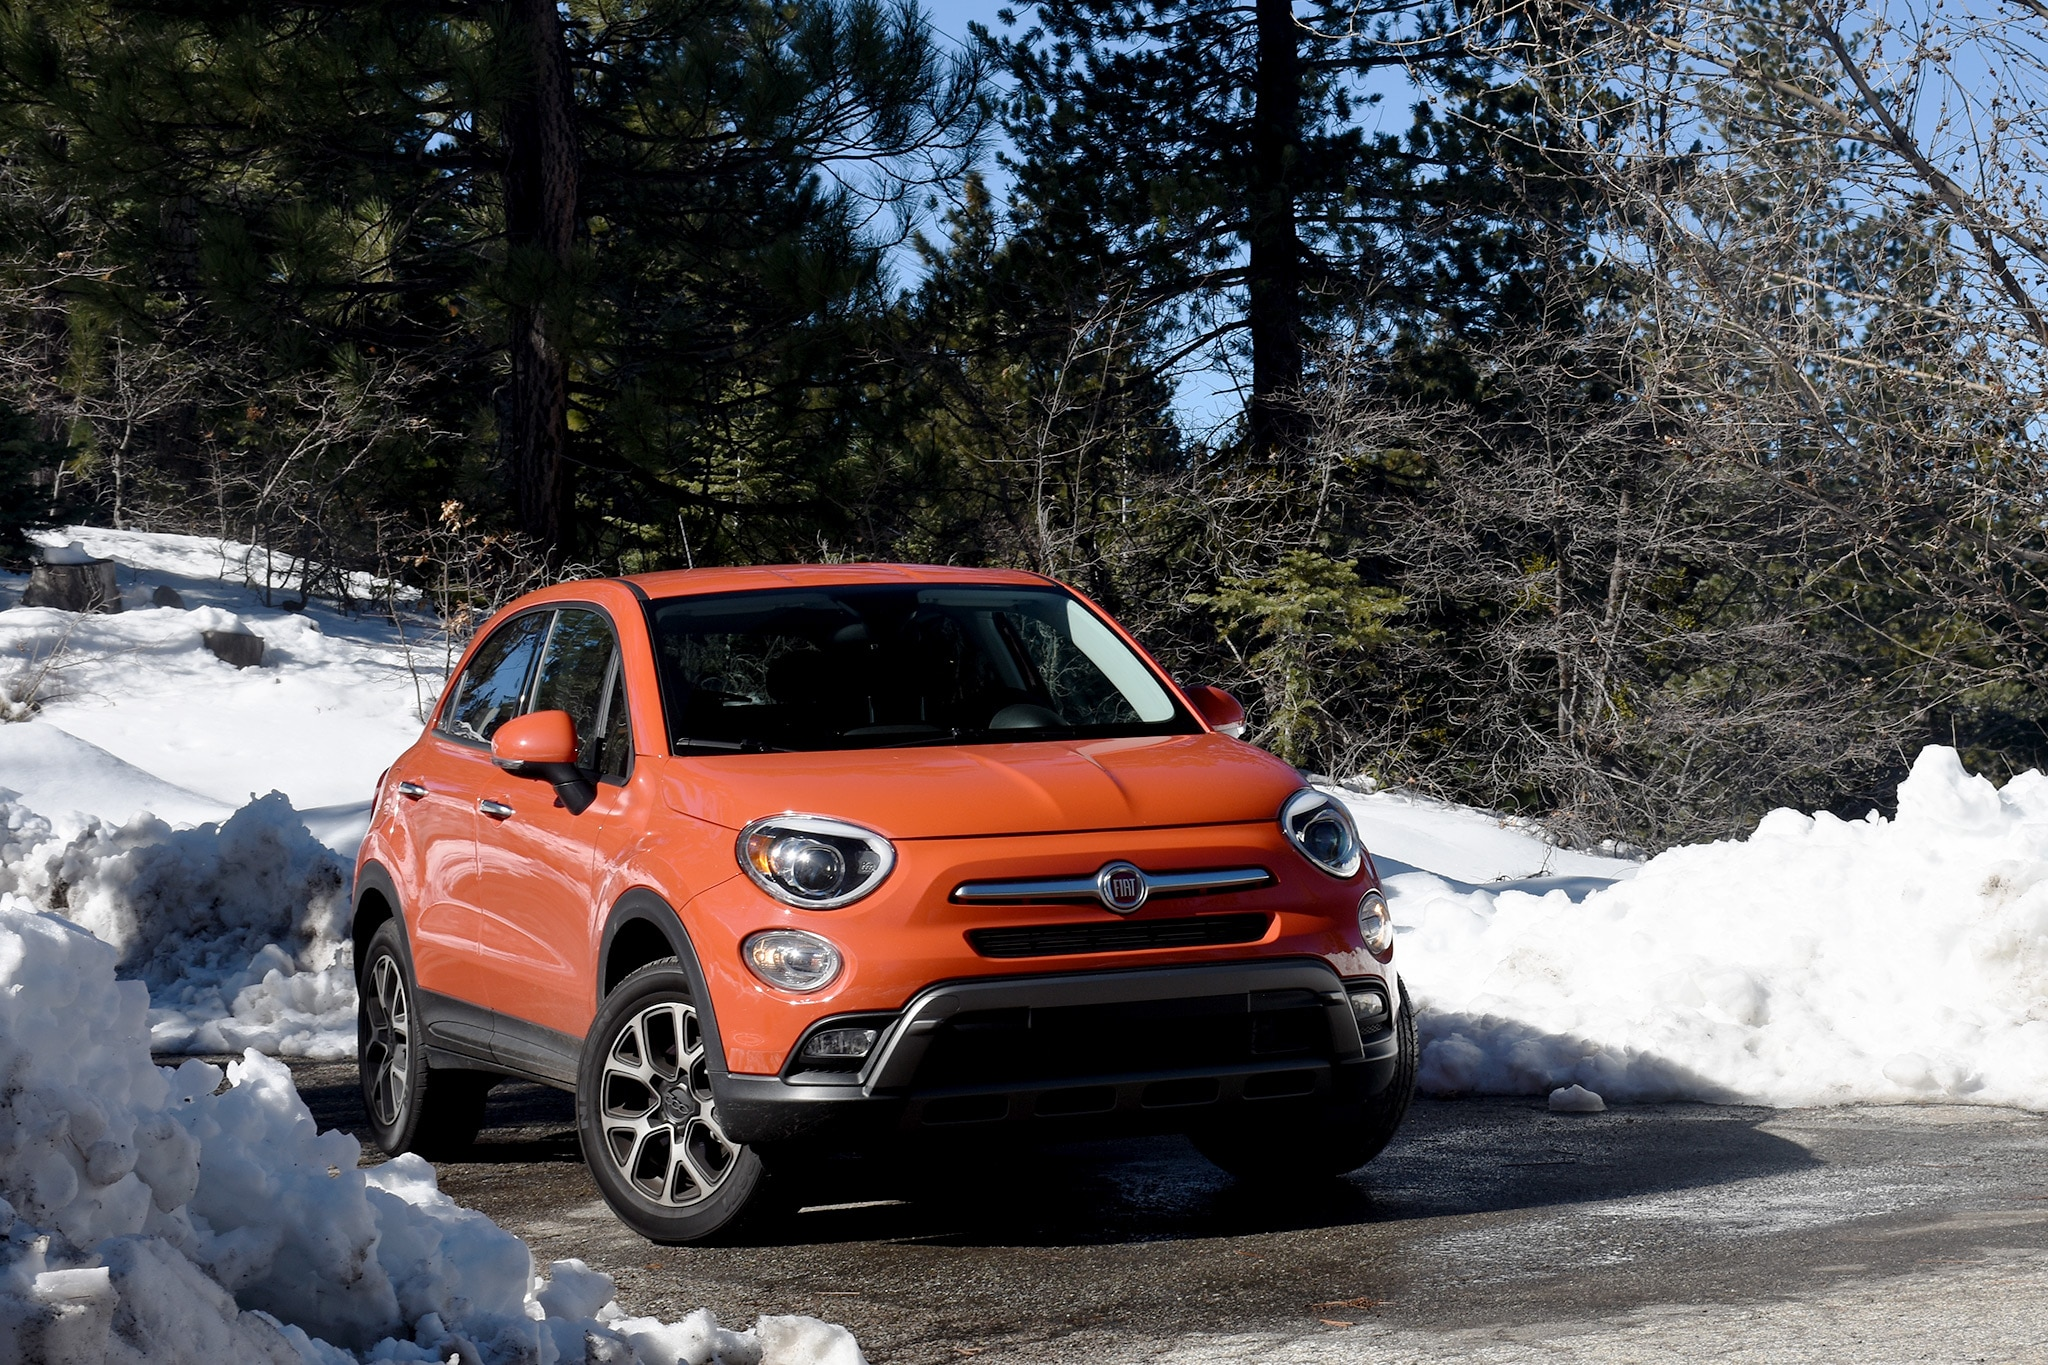 2016 Fiat 500X Trekking Four Seasons Update 3 Front 02